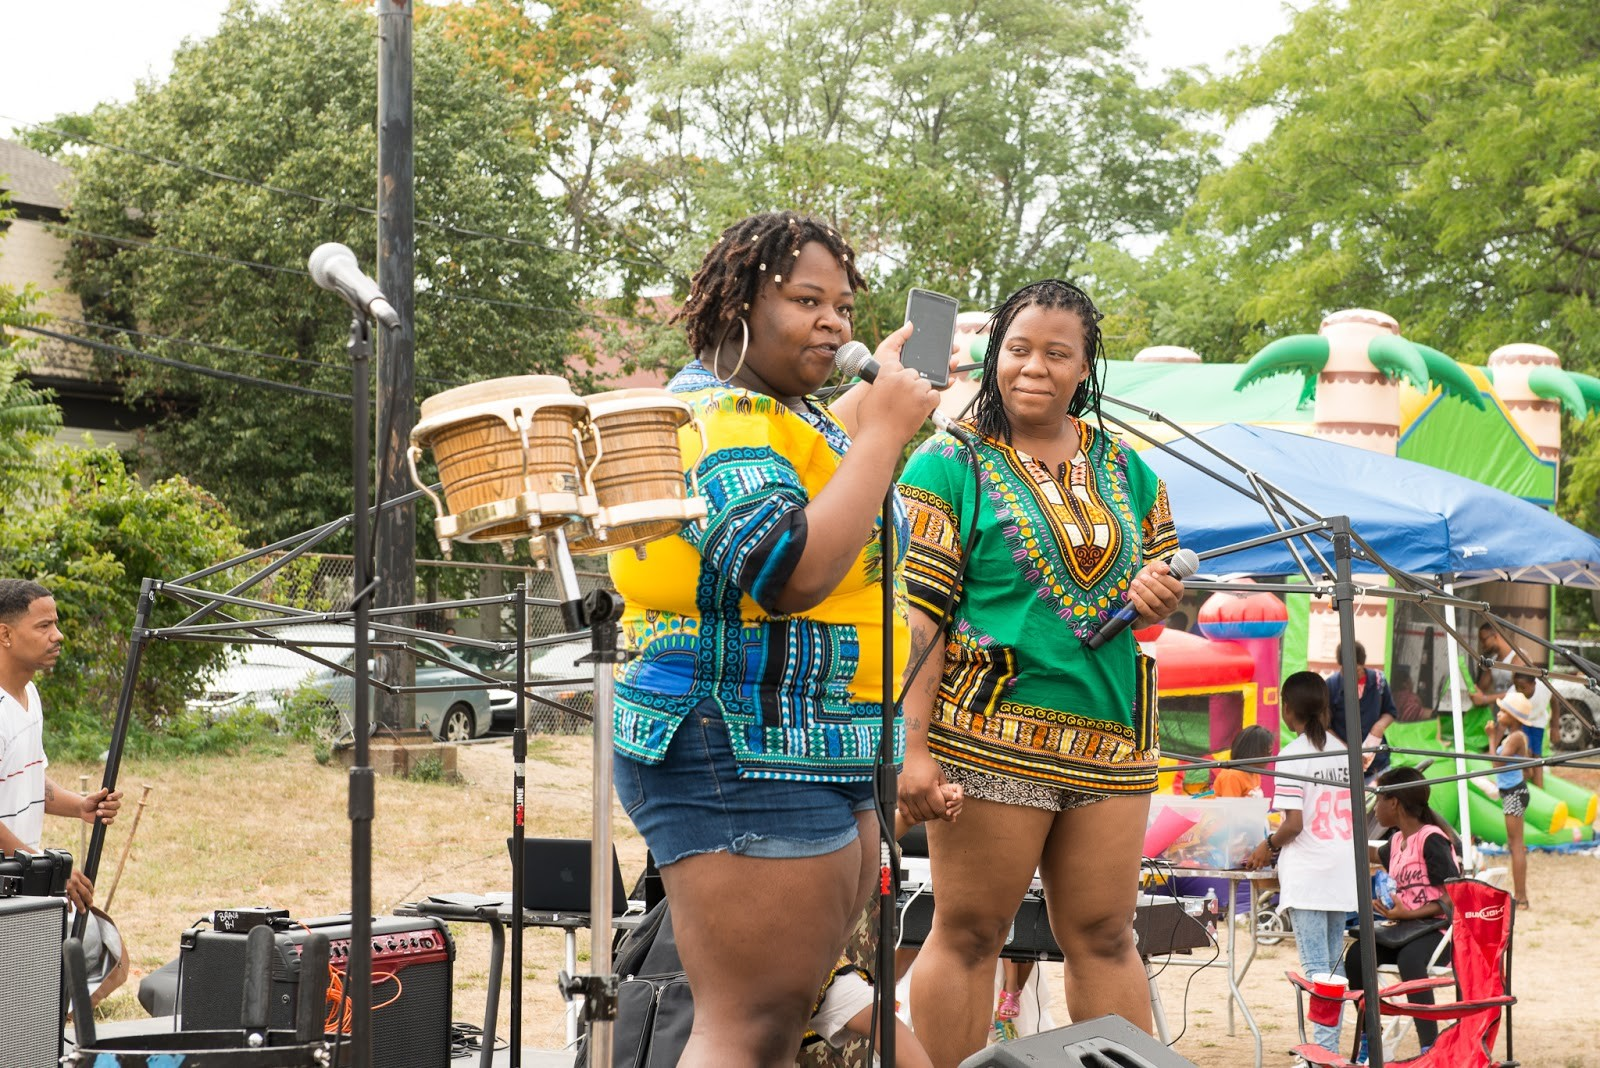 Jaimorry Carter and Ava Mootrey perform at DSNI's 28th Annual Multicultural Festival. Image shows Jaimorry, in a yellow and blue tunic, speaking into a microphone and Ava, in a green and orange tunic, holding a microphone, at Mary Hannon Park in Dorchester. Photography by Mark Fusco.